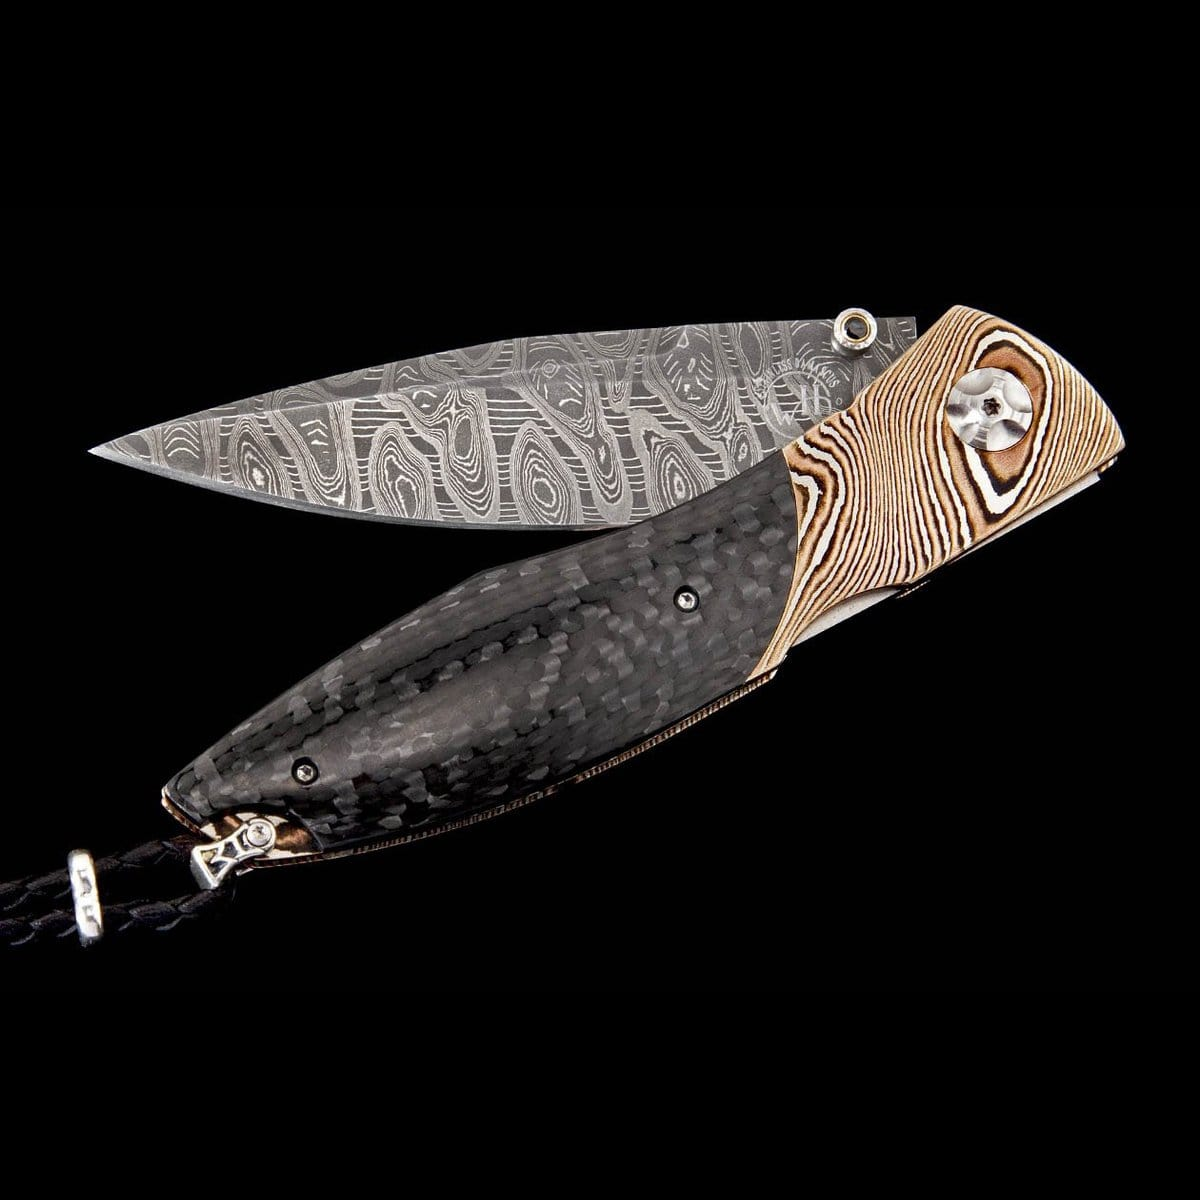 Omni Black & Gold Limited Edition Knife - C19 BLACK AND GOLD-William Henry-Renee Taylor Gallery